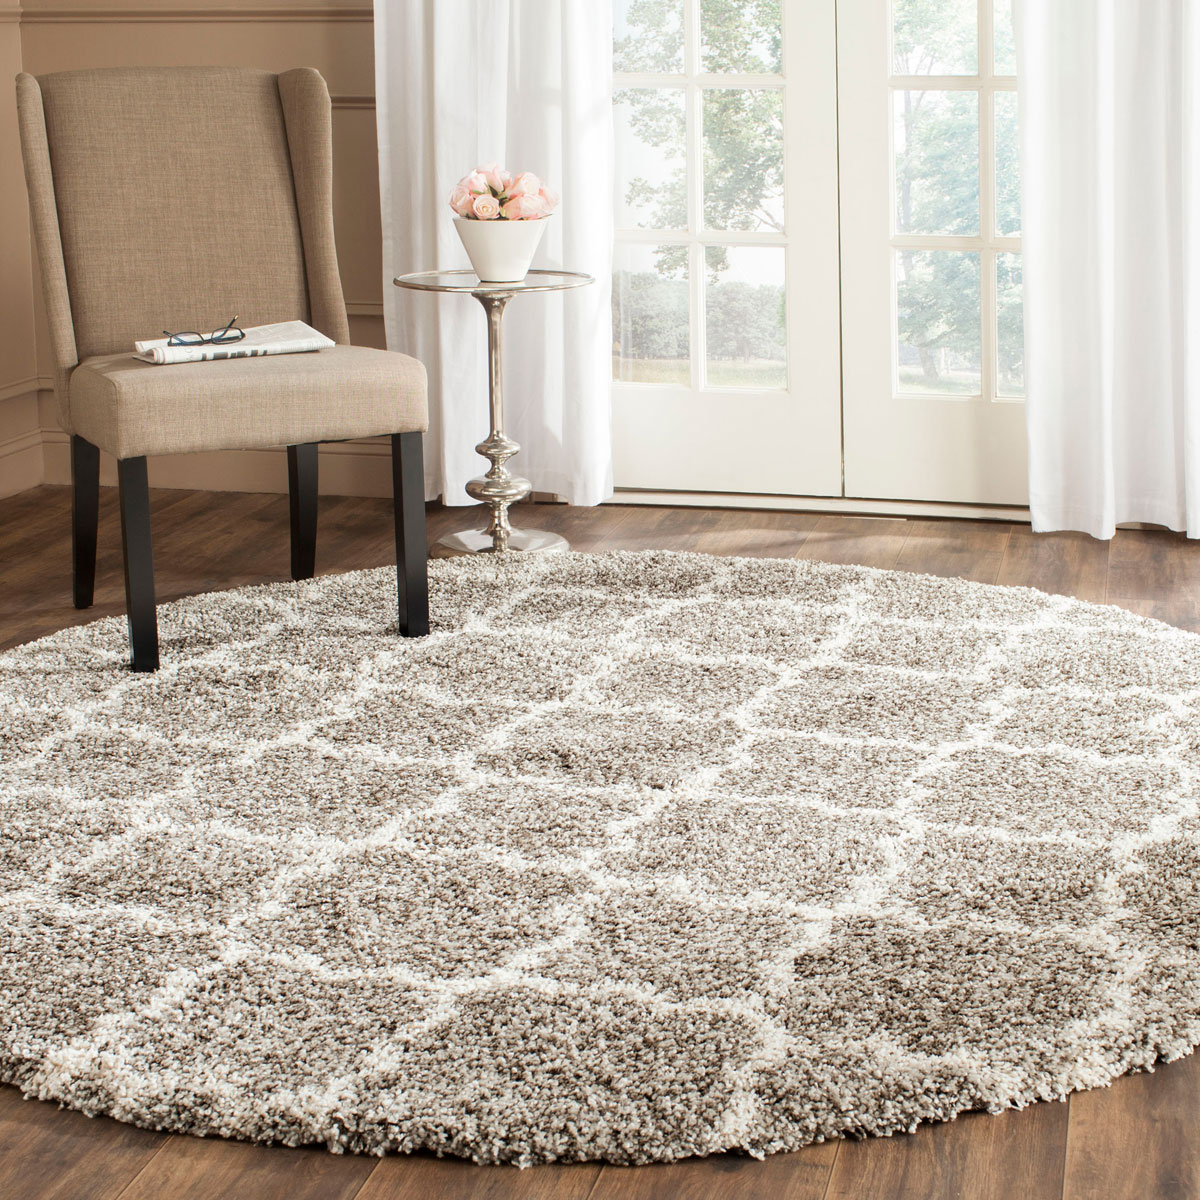 Soft Grey Amp White Shag Hudson Collection Safavieh Com